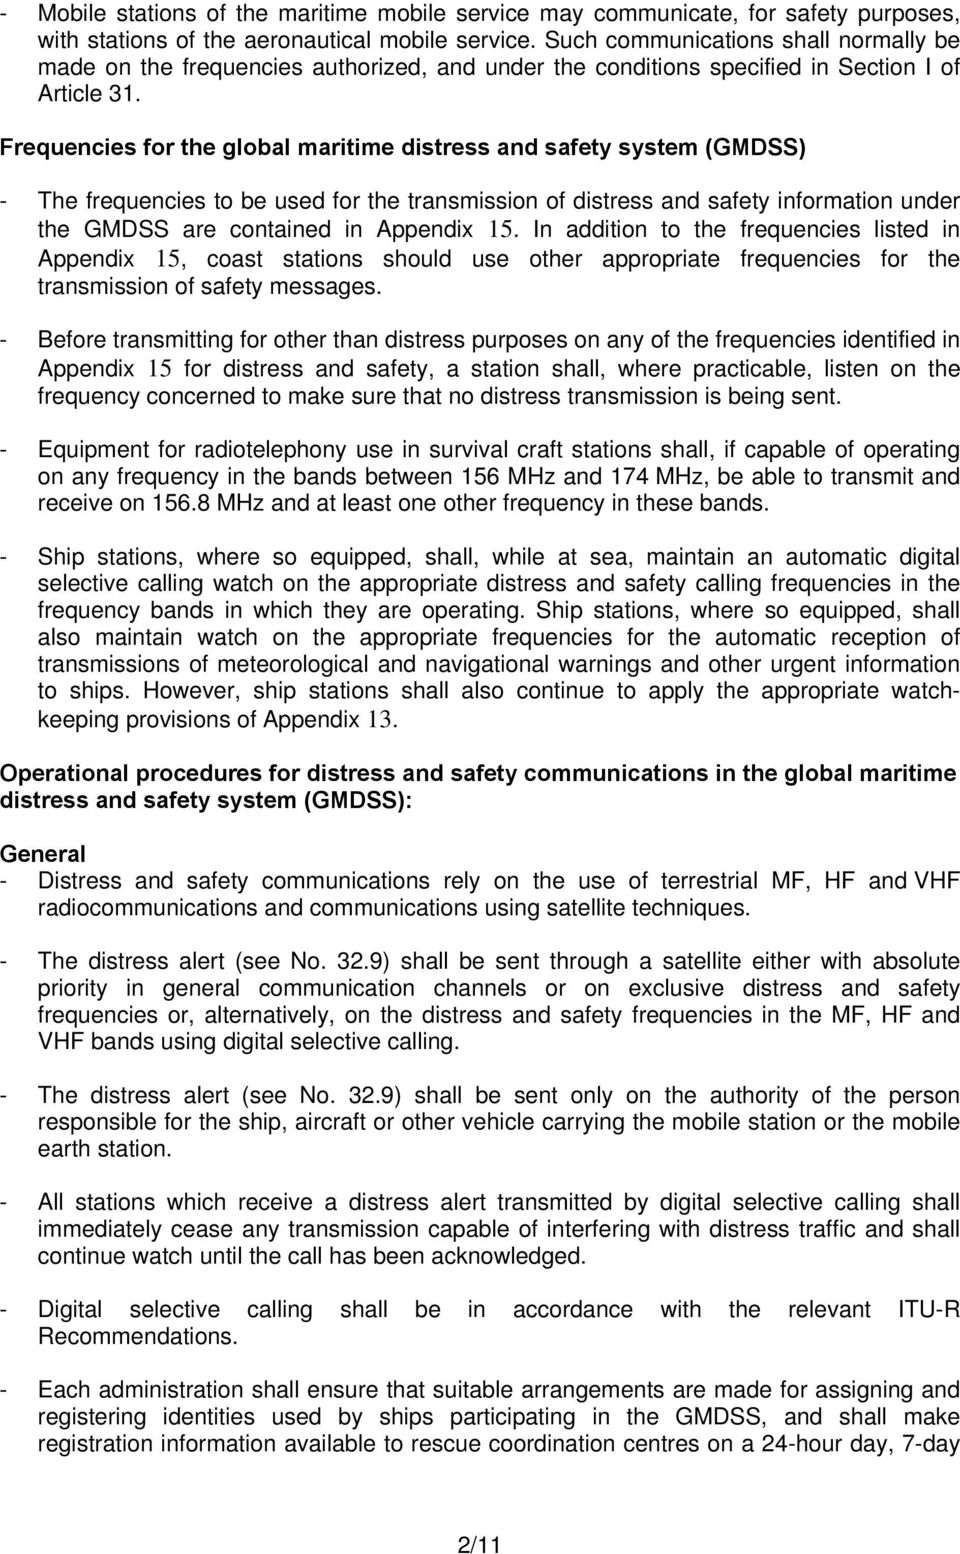 Frequencies for the global maritime distress and safety system (GMDSS) - The frequencies to be used for the transmission of distress and safety information under the GMDSS are contained in Appendix